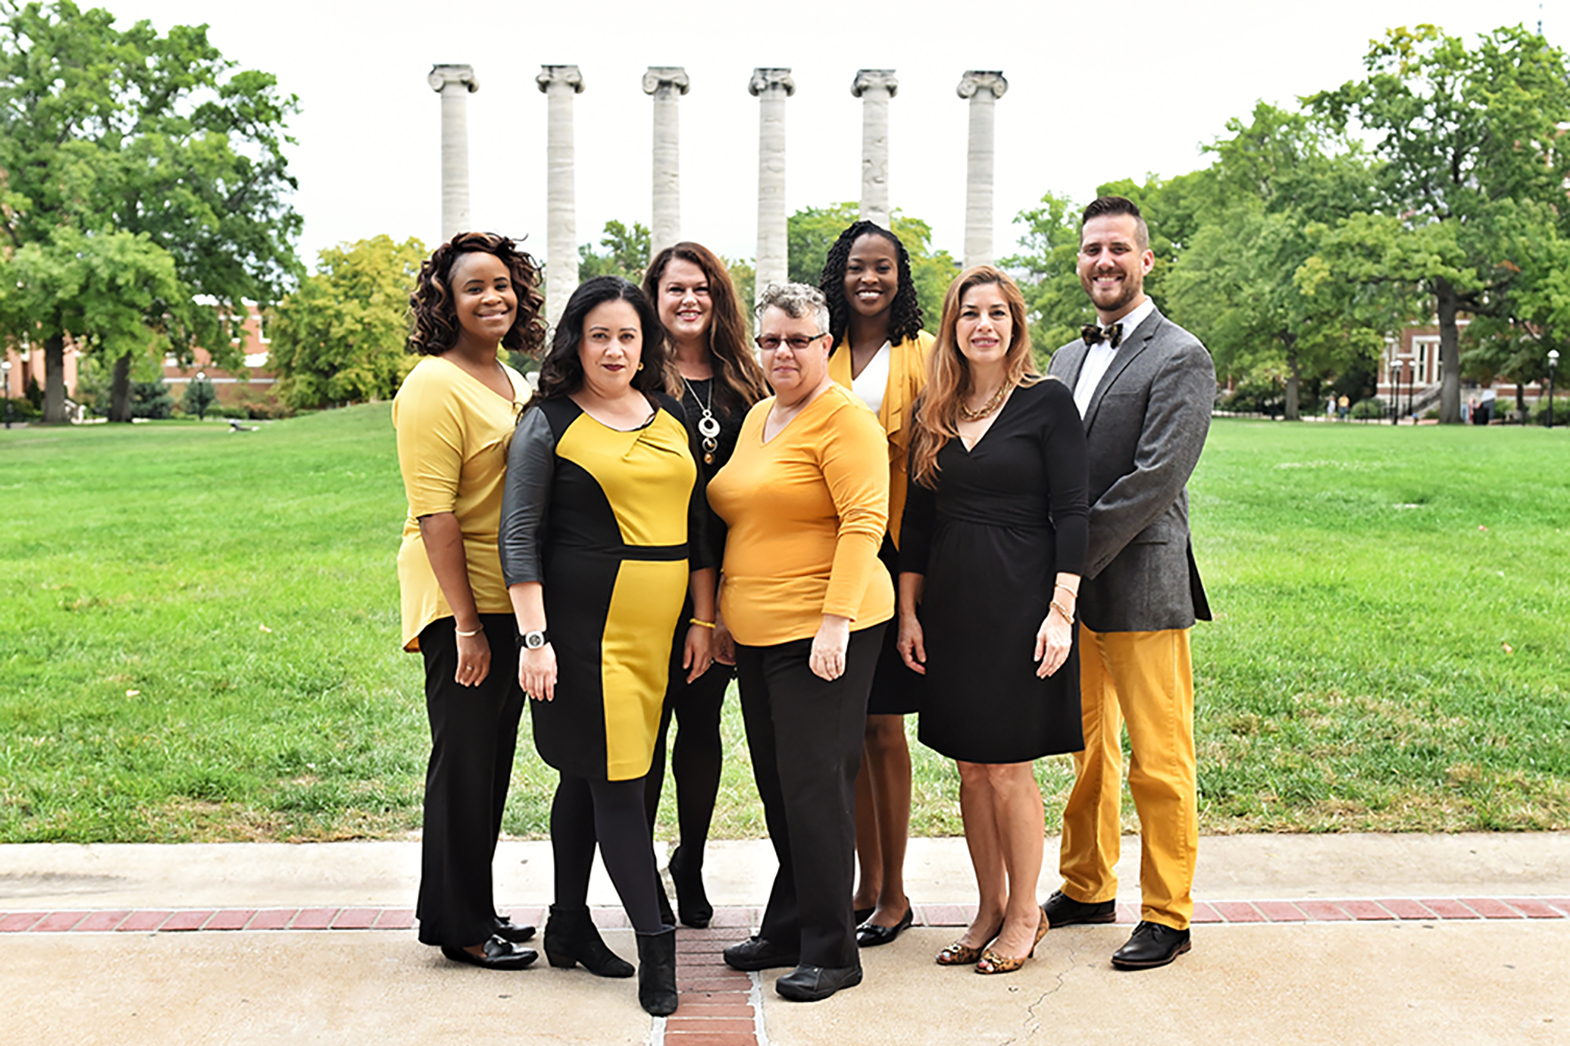 Members of OIE pose together in front of the Columns - Morgan McAboy-Young, Astrid Villamil, Caprcie Leighton, Tara Warne-Griggs, Inya Baiye, Alejandra Gudino, Ryan Gavin